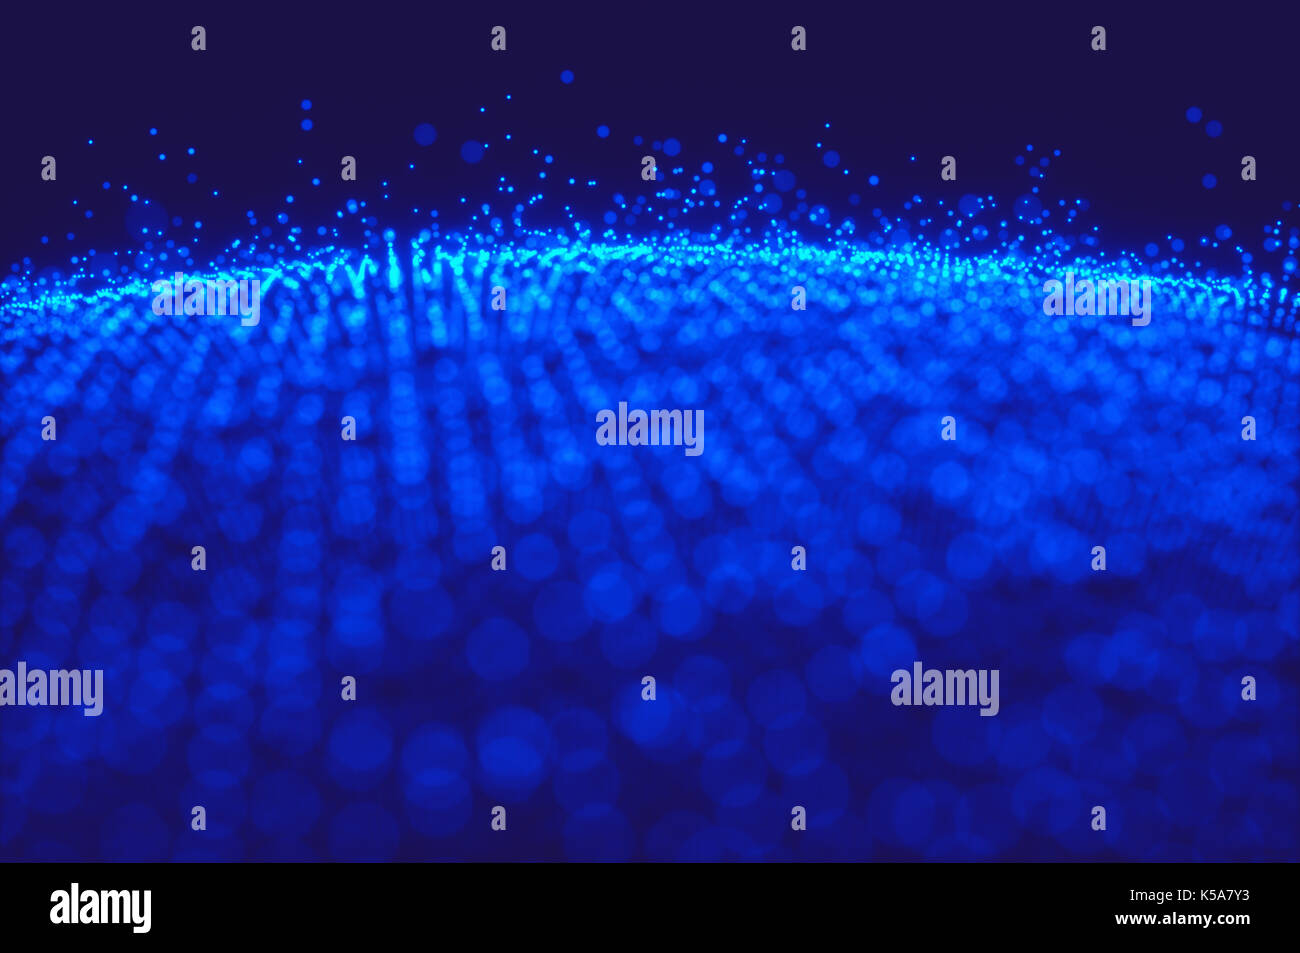 Abstract blue pattern, illustration. - Stock Image